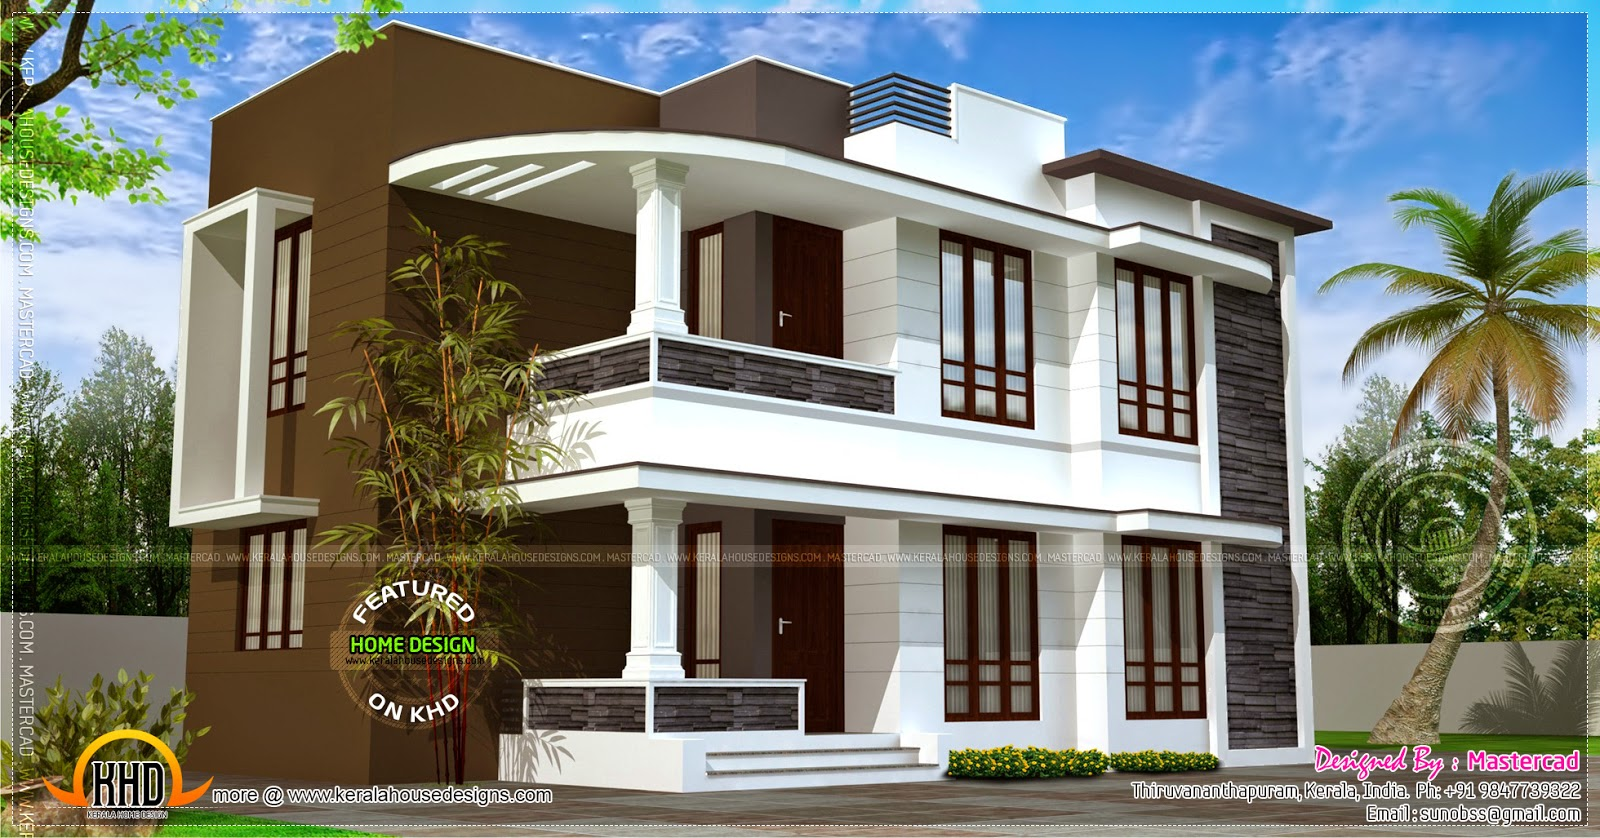 Modern 1500 sq.ft house exterior ~ Indian House Plans